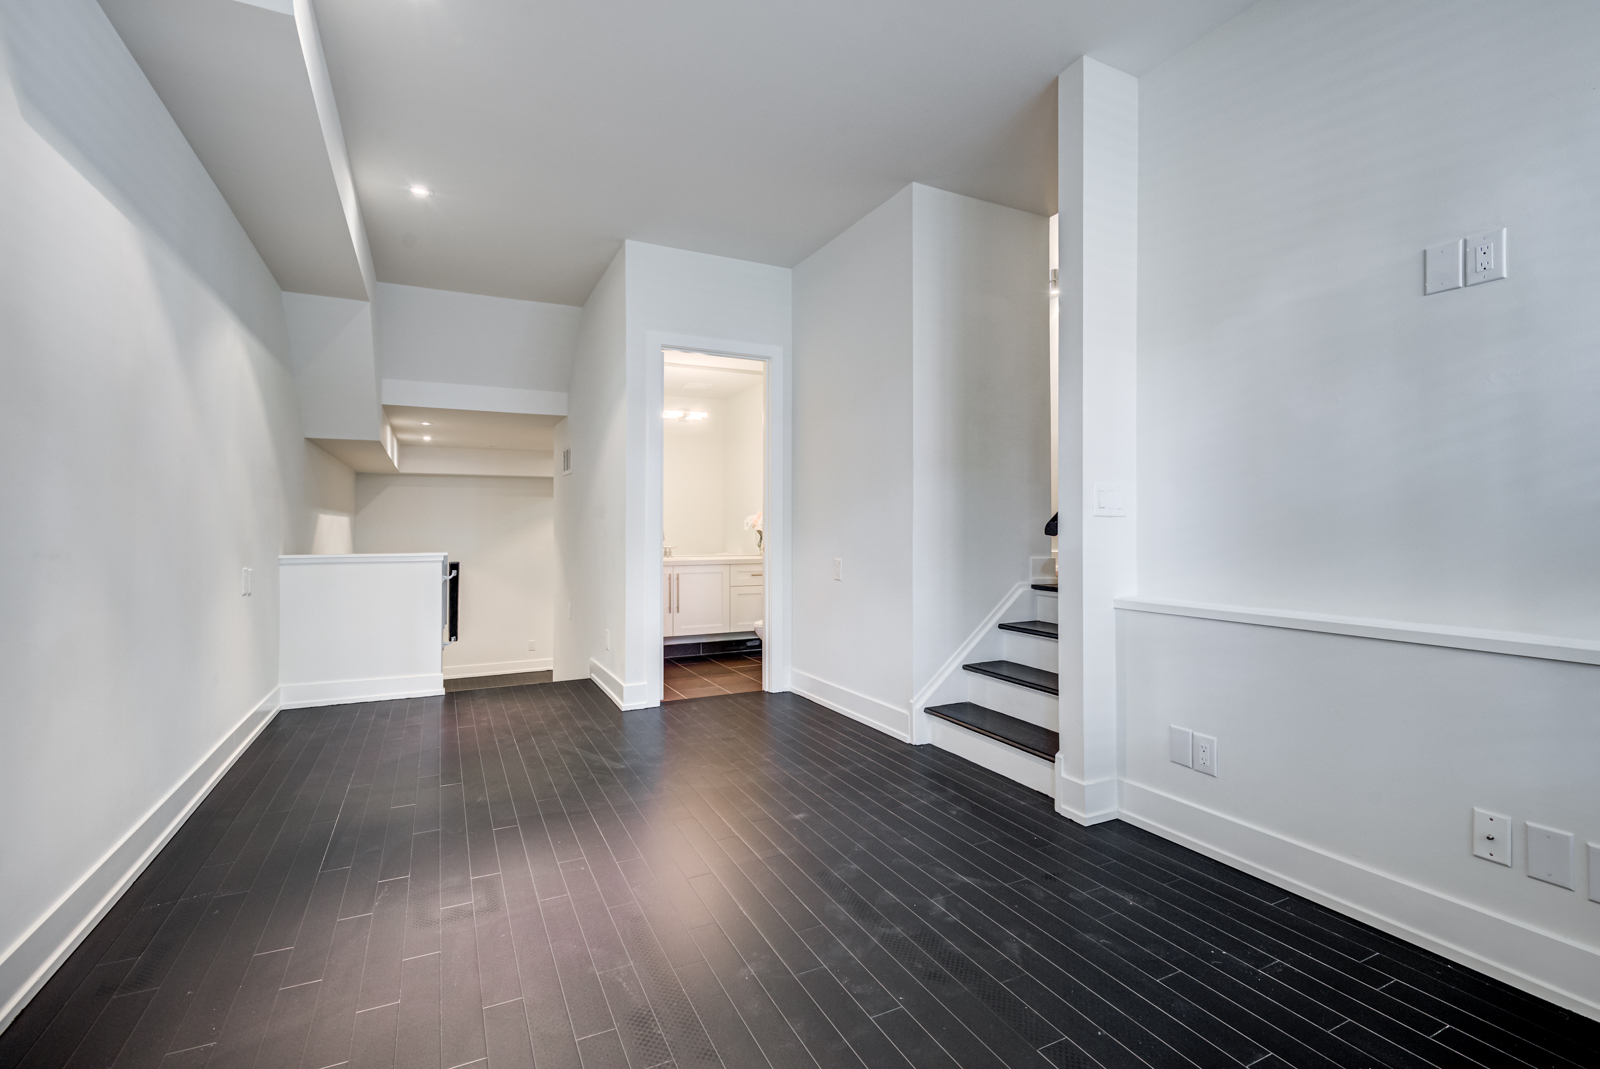 Huge empty townhouse condo lower level